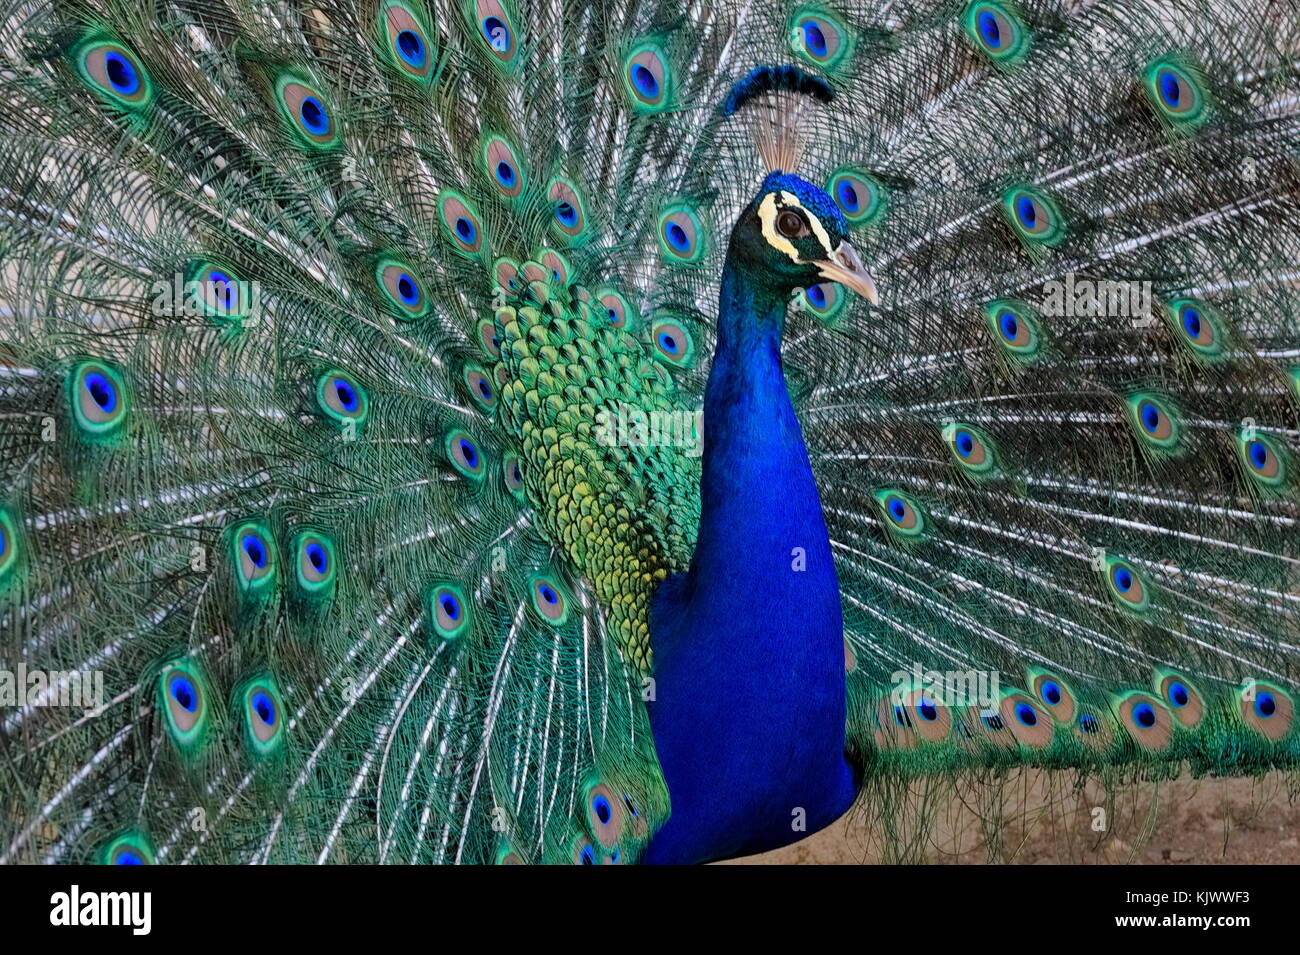 Close up of male peacock (peafowl), showing its beautiful feathers. - Stock Image